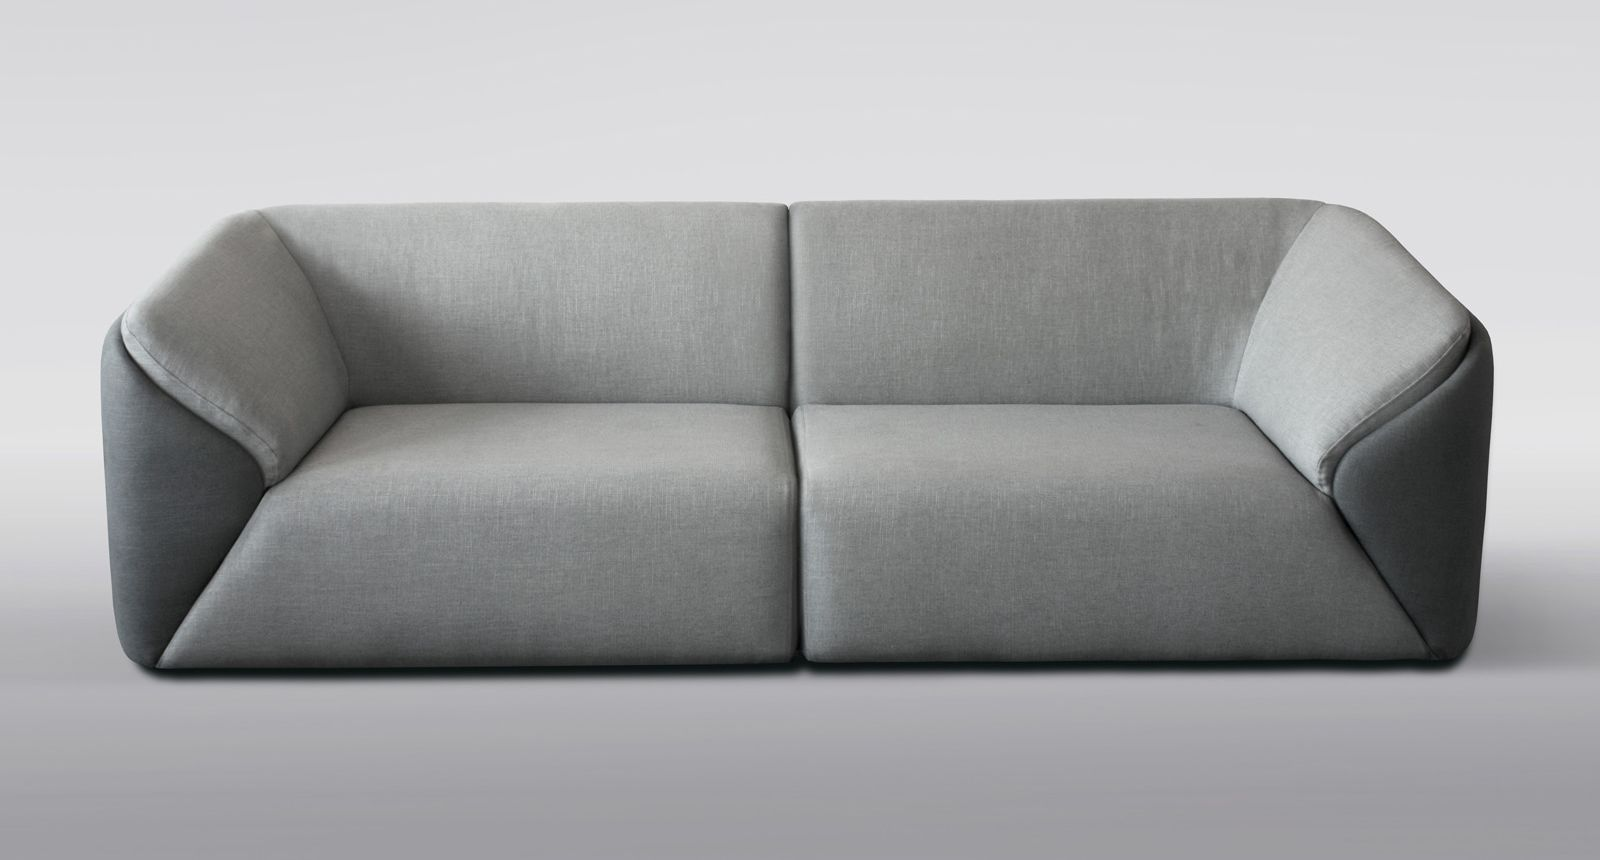 Marvelous Sofa 60 Slice   Designer Sofa 2